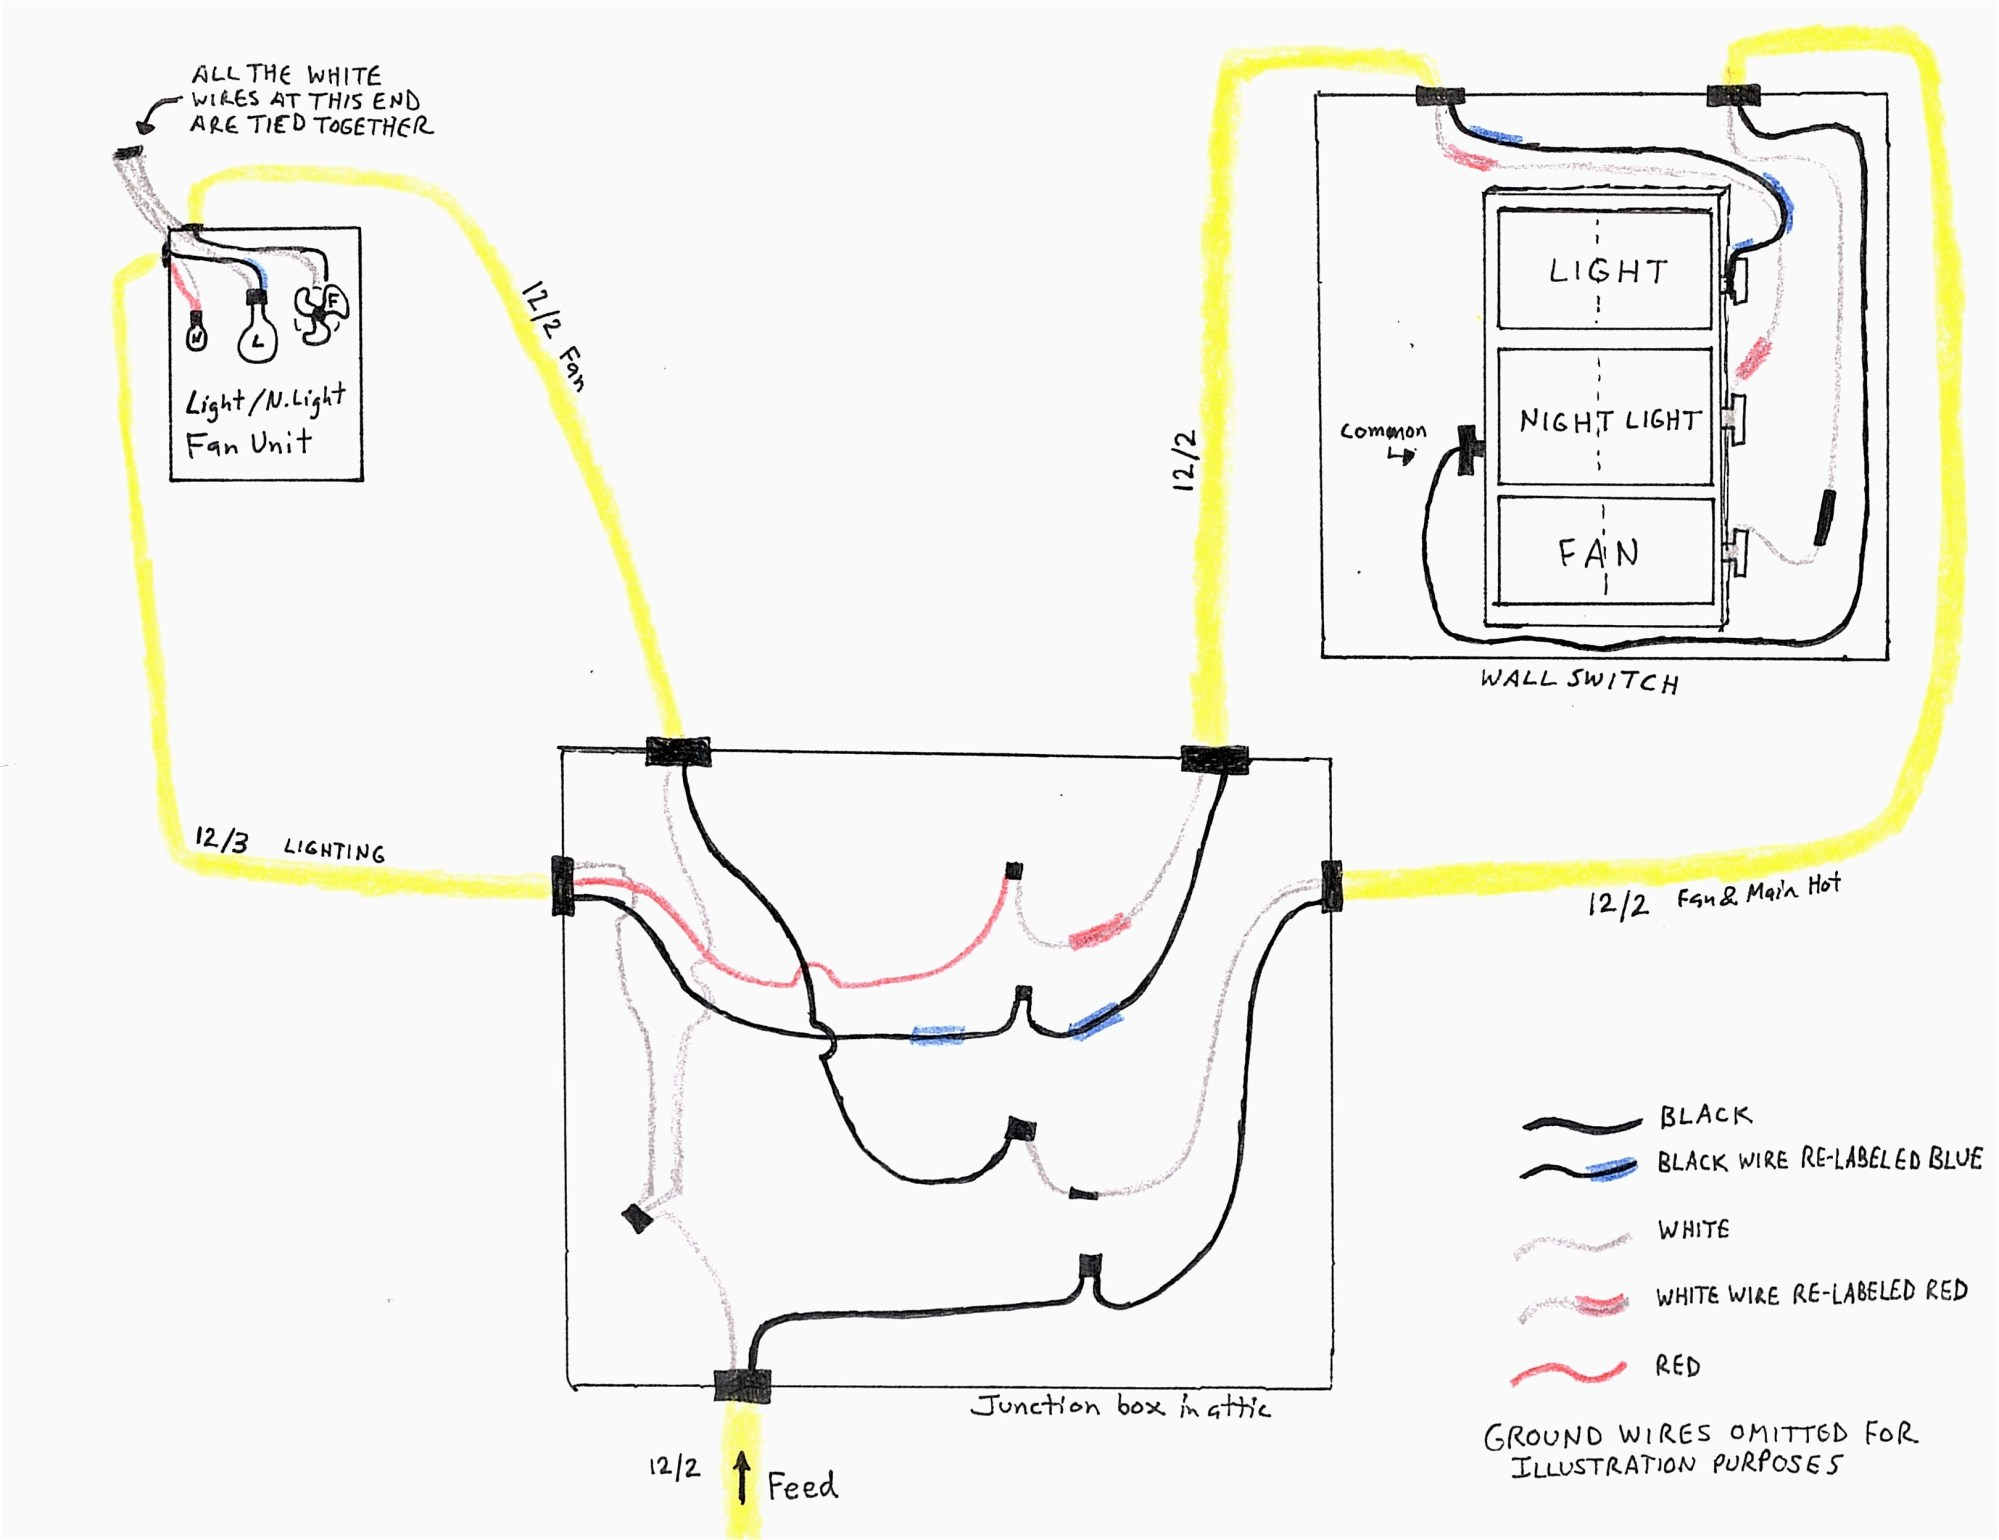 hight resolution of jin you e70469 wiring diagram collection wiring diagram for ceiling extractor fan new wiring diagram download wiring diagram